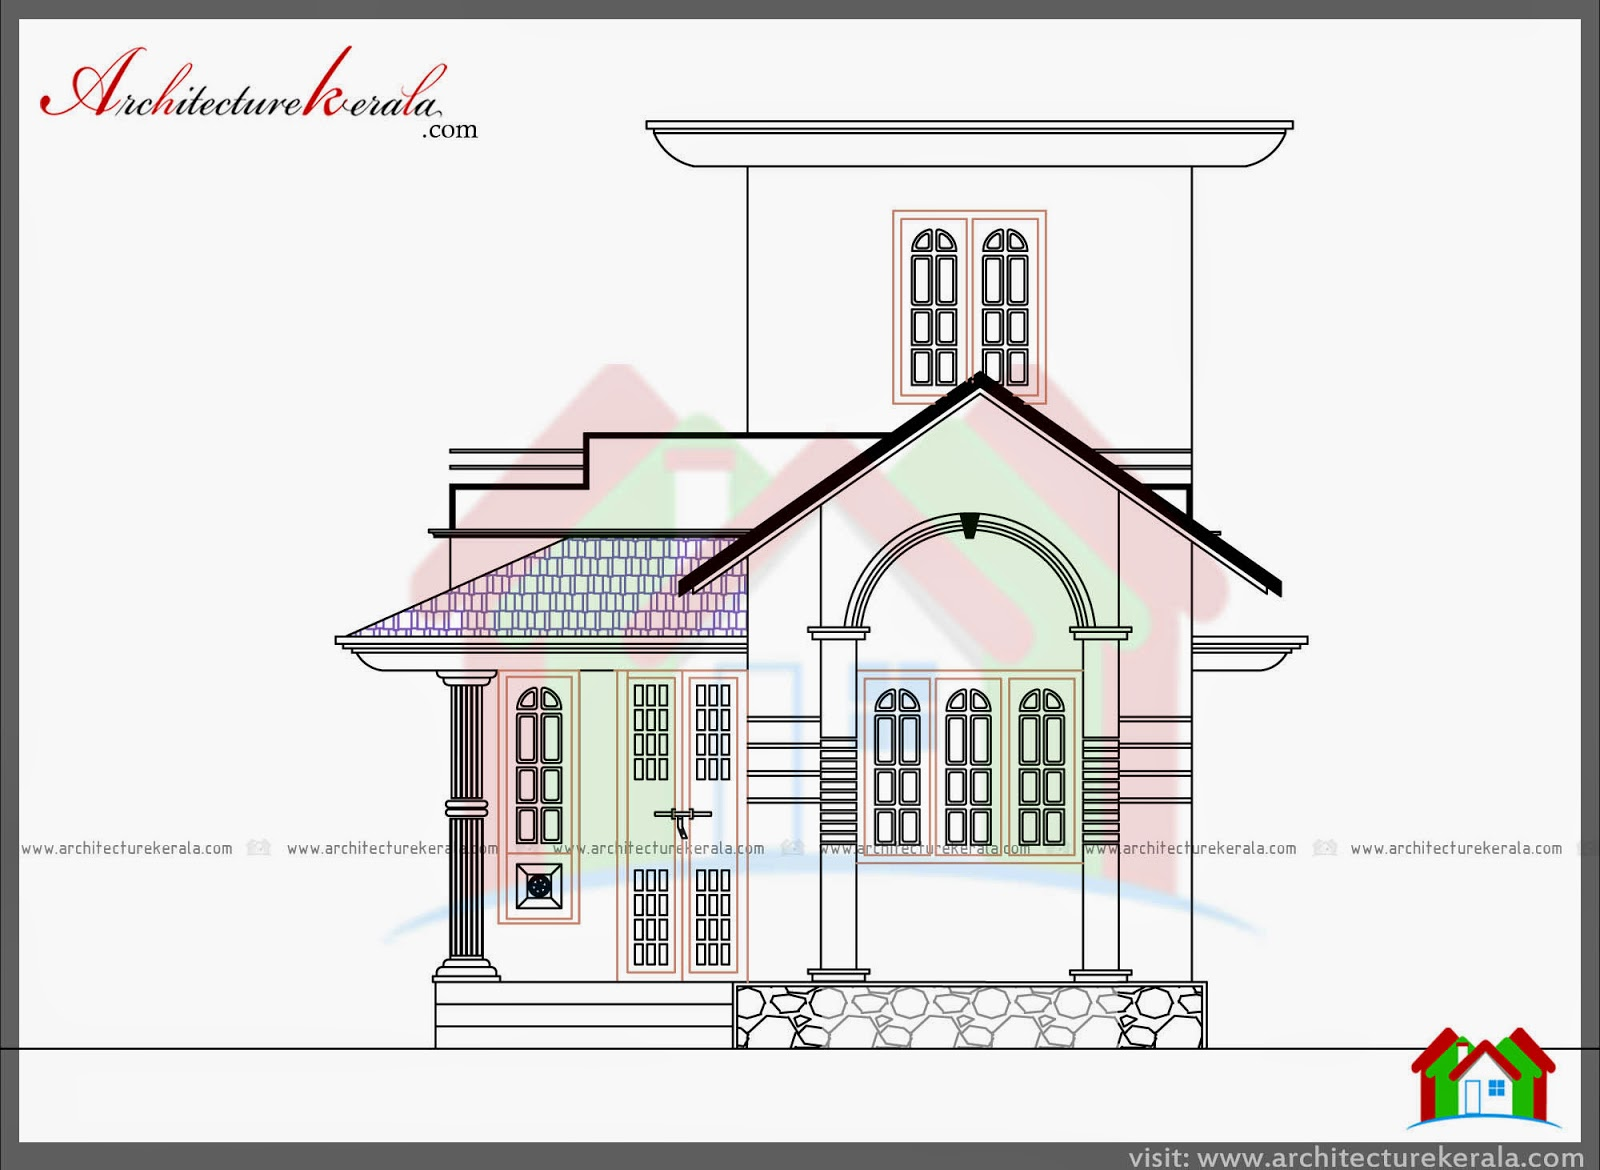 750 sq ft house plan and elevation architecture kerala for Kerala home plan and elevation 1000 sq ft